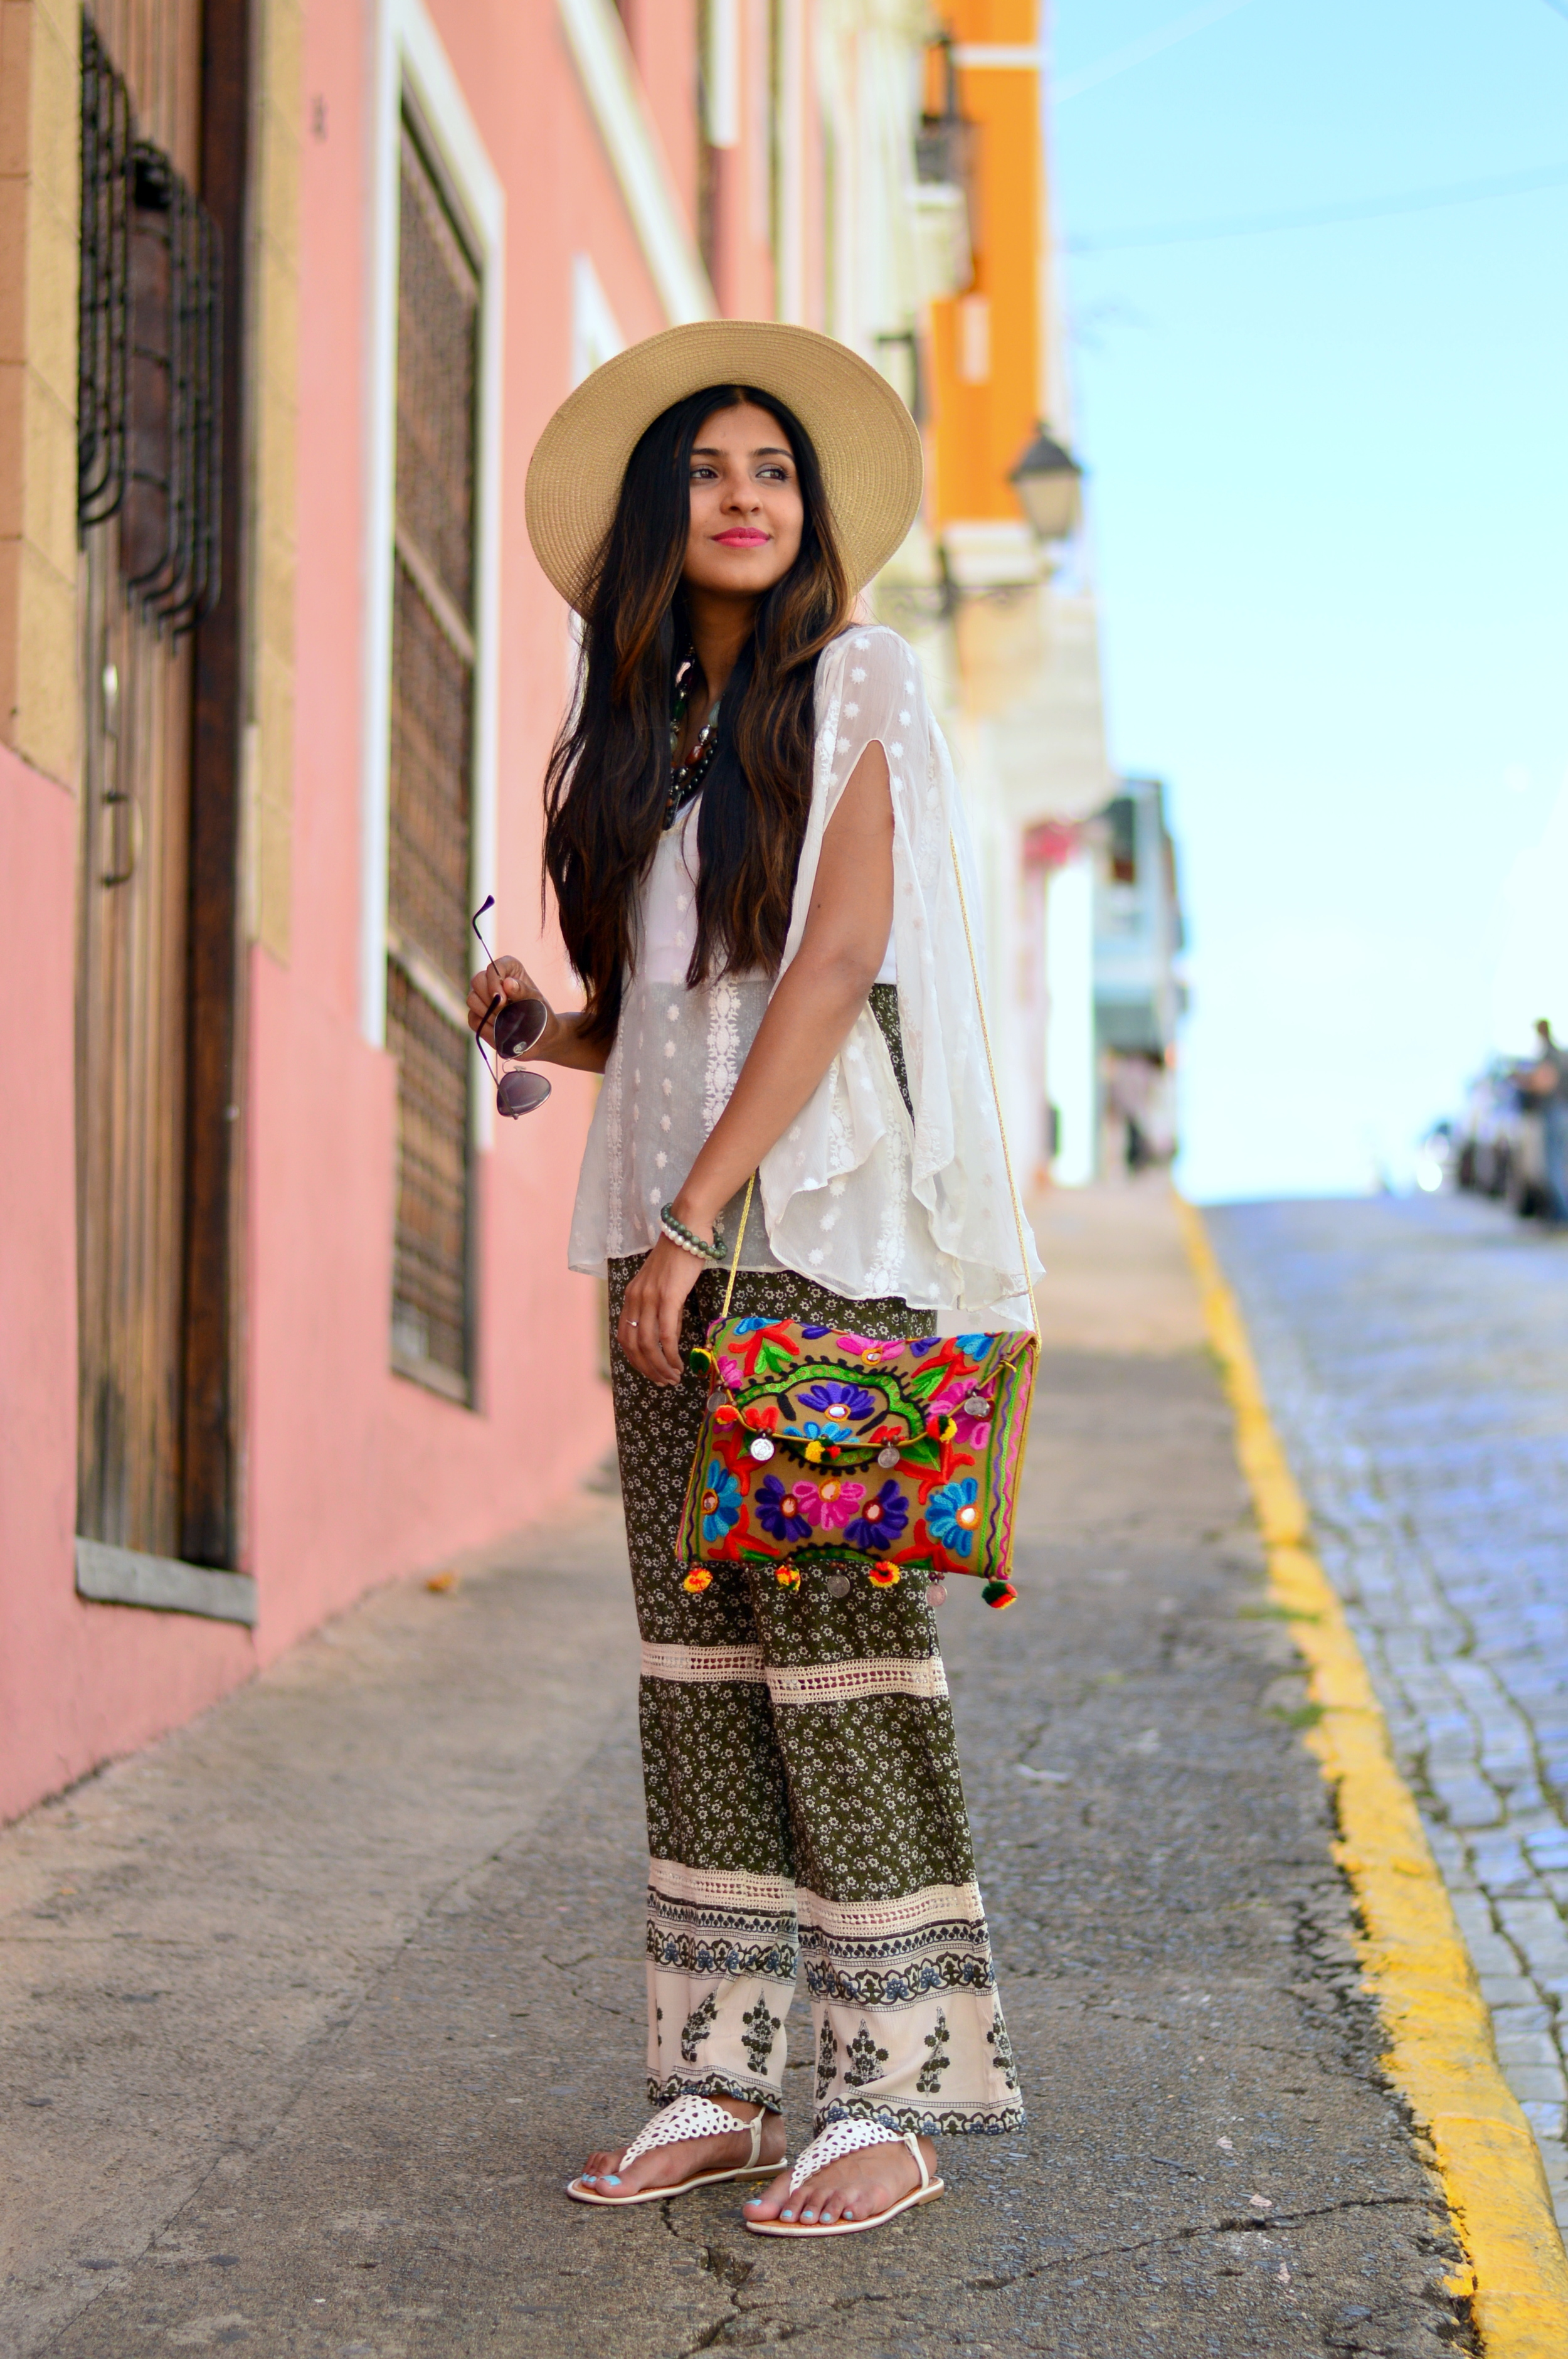 hippie-chic-festival-style-boho-blogger-outfit